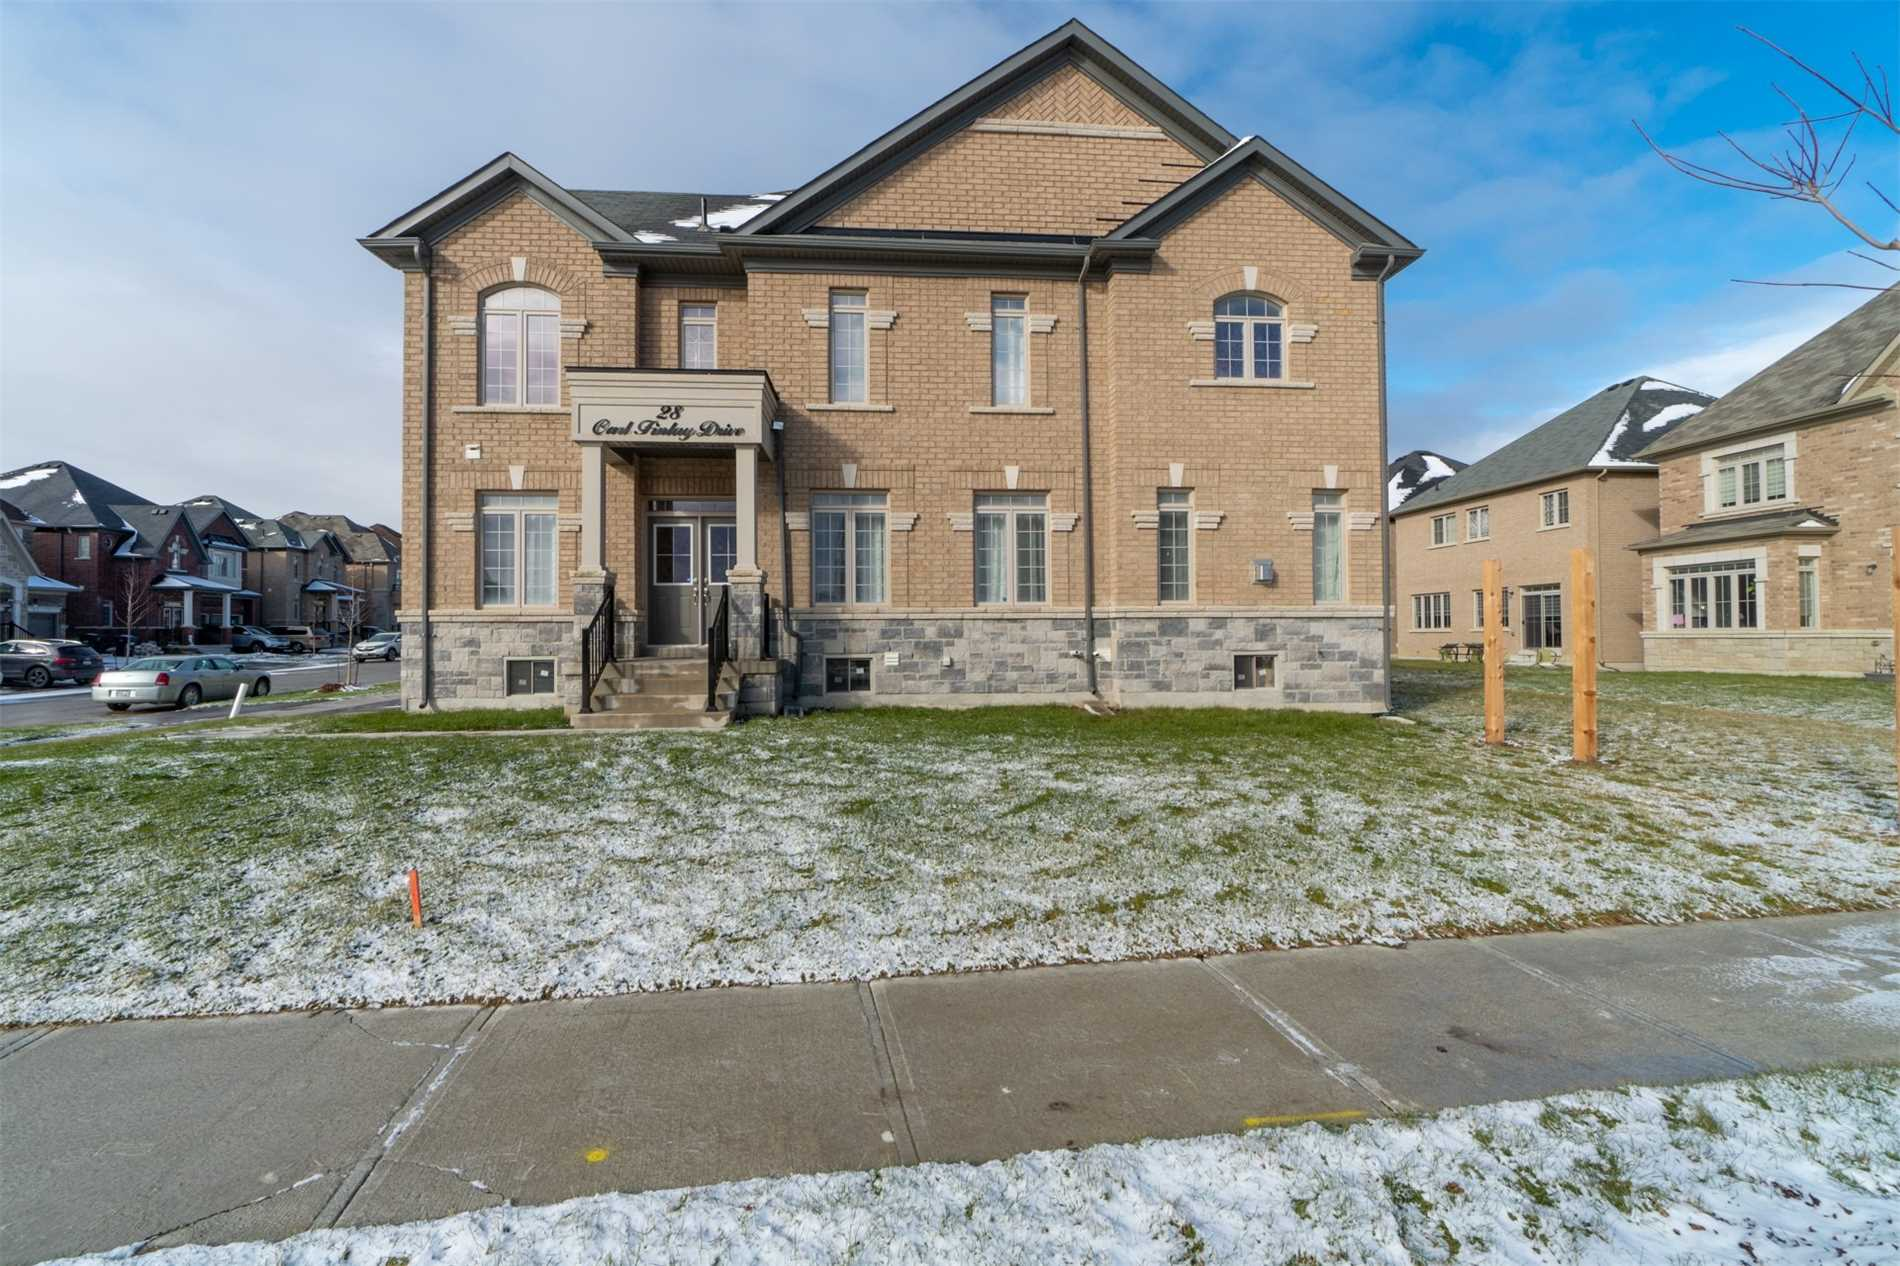 Premium Corner Lot, Brick/Stone 4 Beds, 4 Beds, 4 Baths  Home In Coveted Vales Of Humber. This Executive Home Boasts 10' Ceiling (Main) And 9' Ceilings In 2nd Level. Builder Upgraded Kitchen E/Granite Counter-Top And W/O To Backyard. Hardwood Throughout Main Level. Main Level Office, Second Floor Laundry, Bursting With Natural Light**